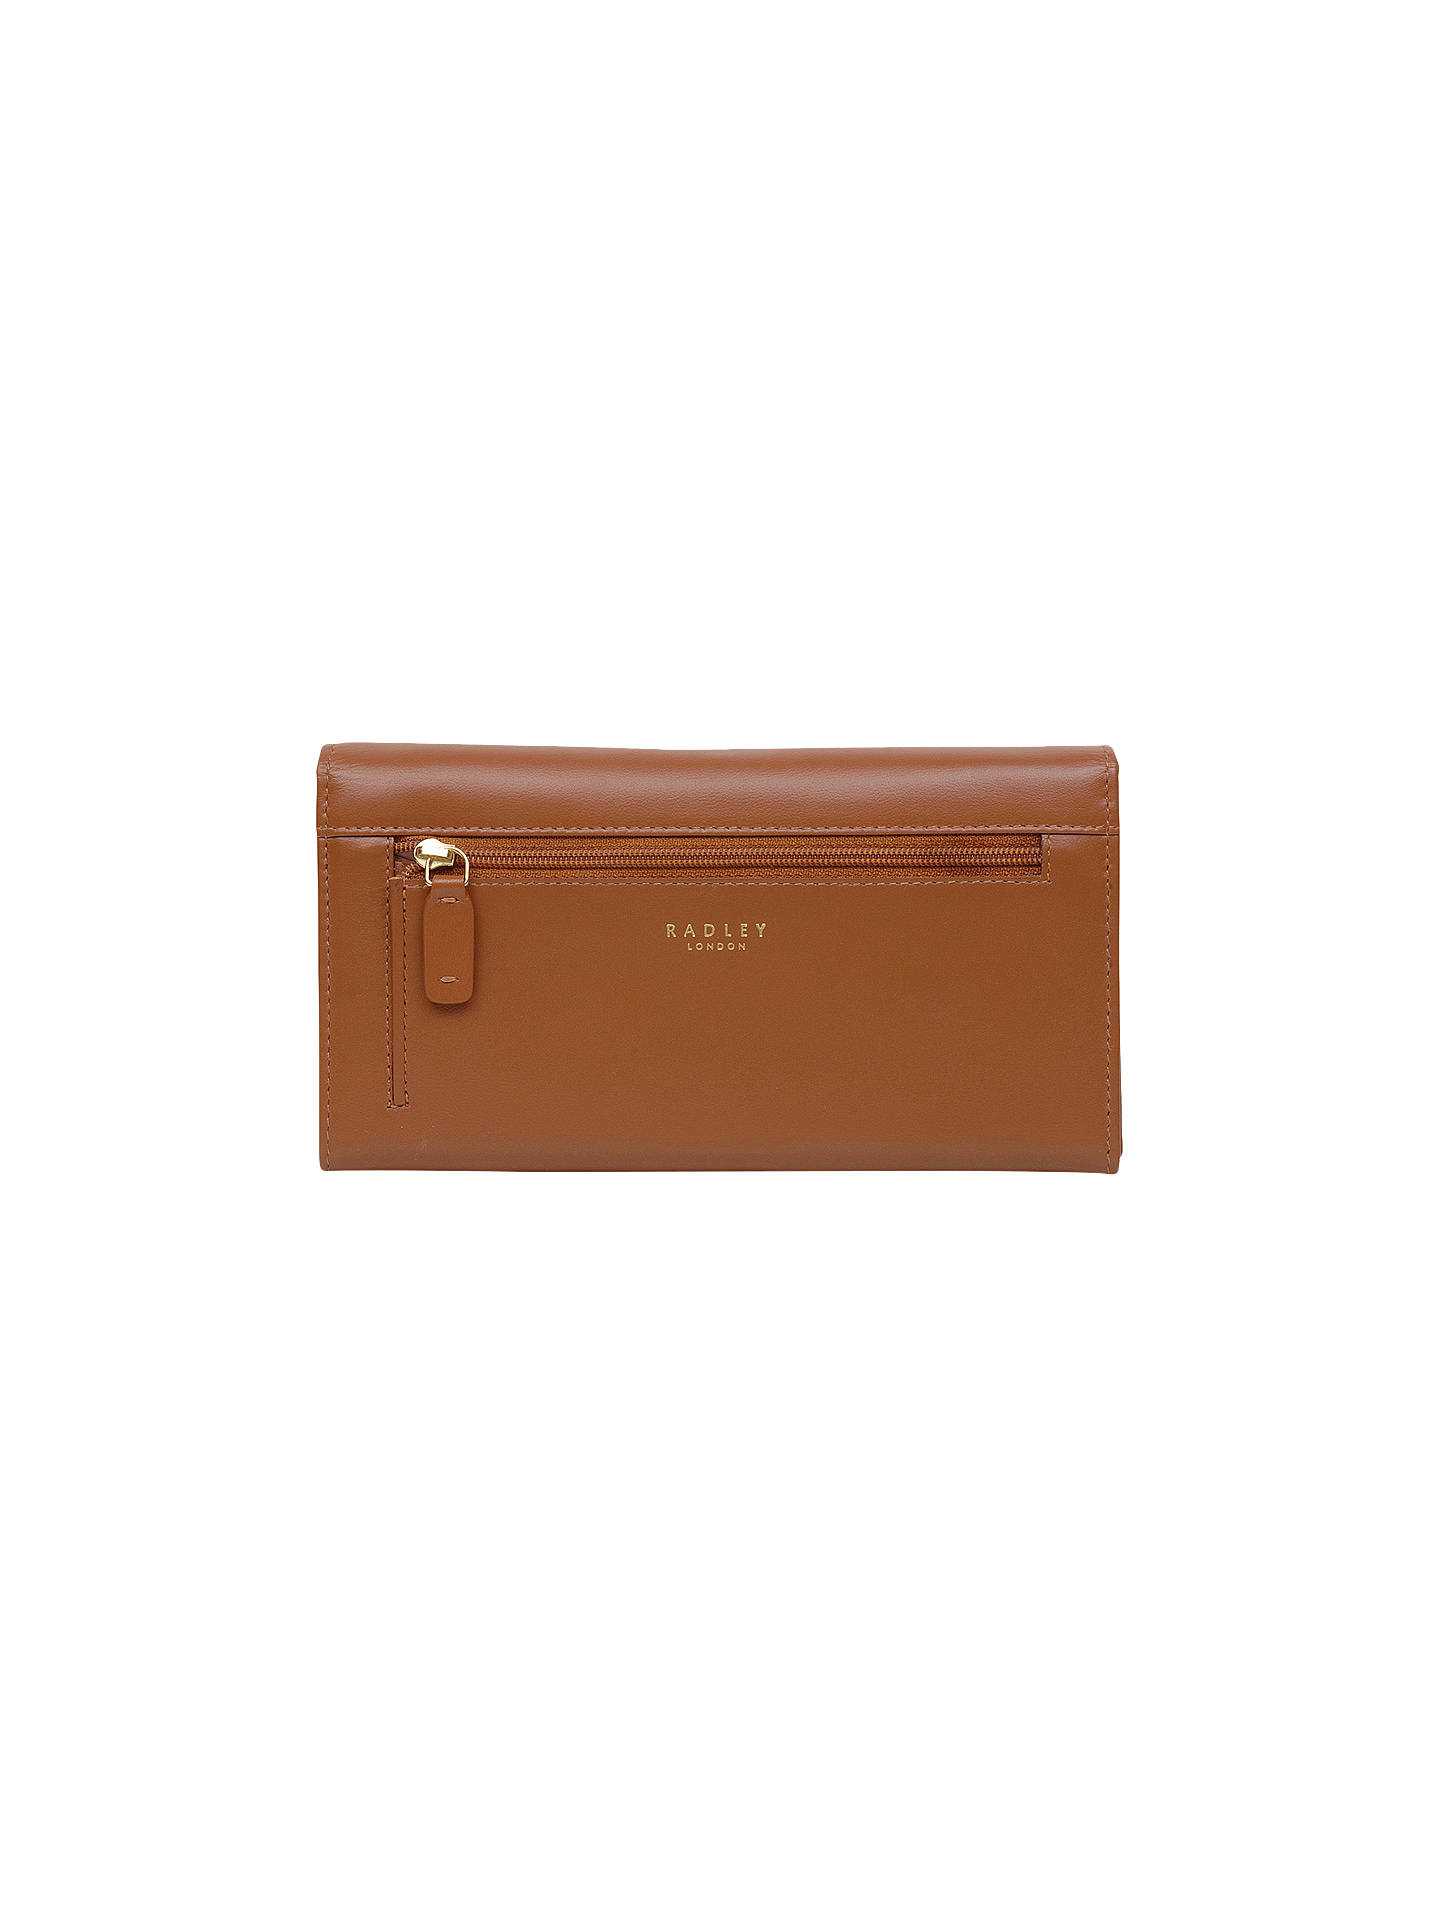 Buy Radley Heritage Dog Leather Outlined Large Matinee Purse, Tan Online at johnlewis.com